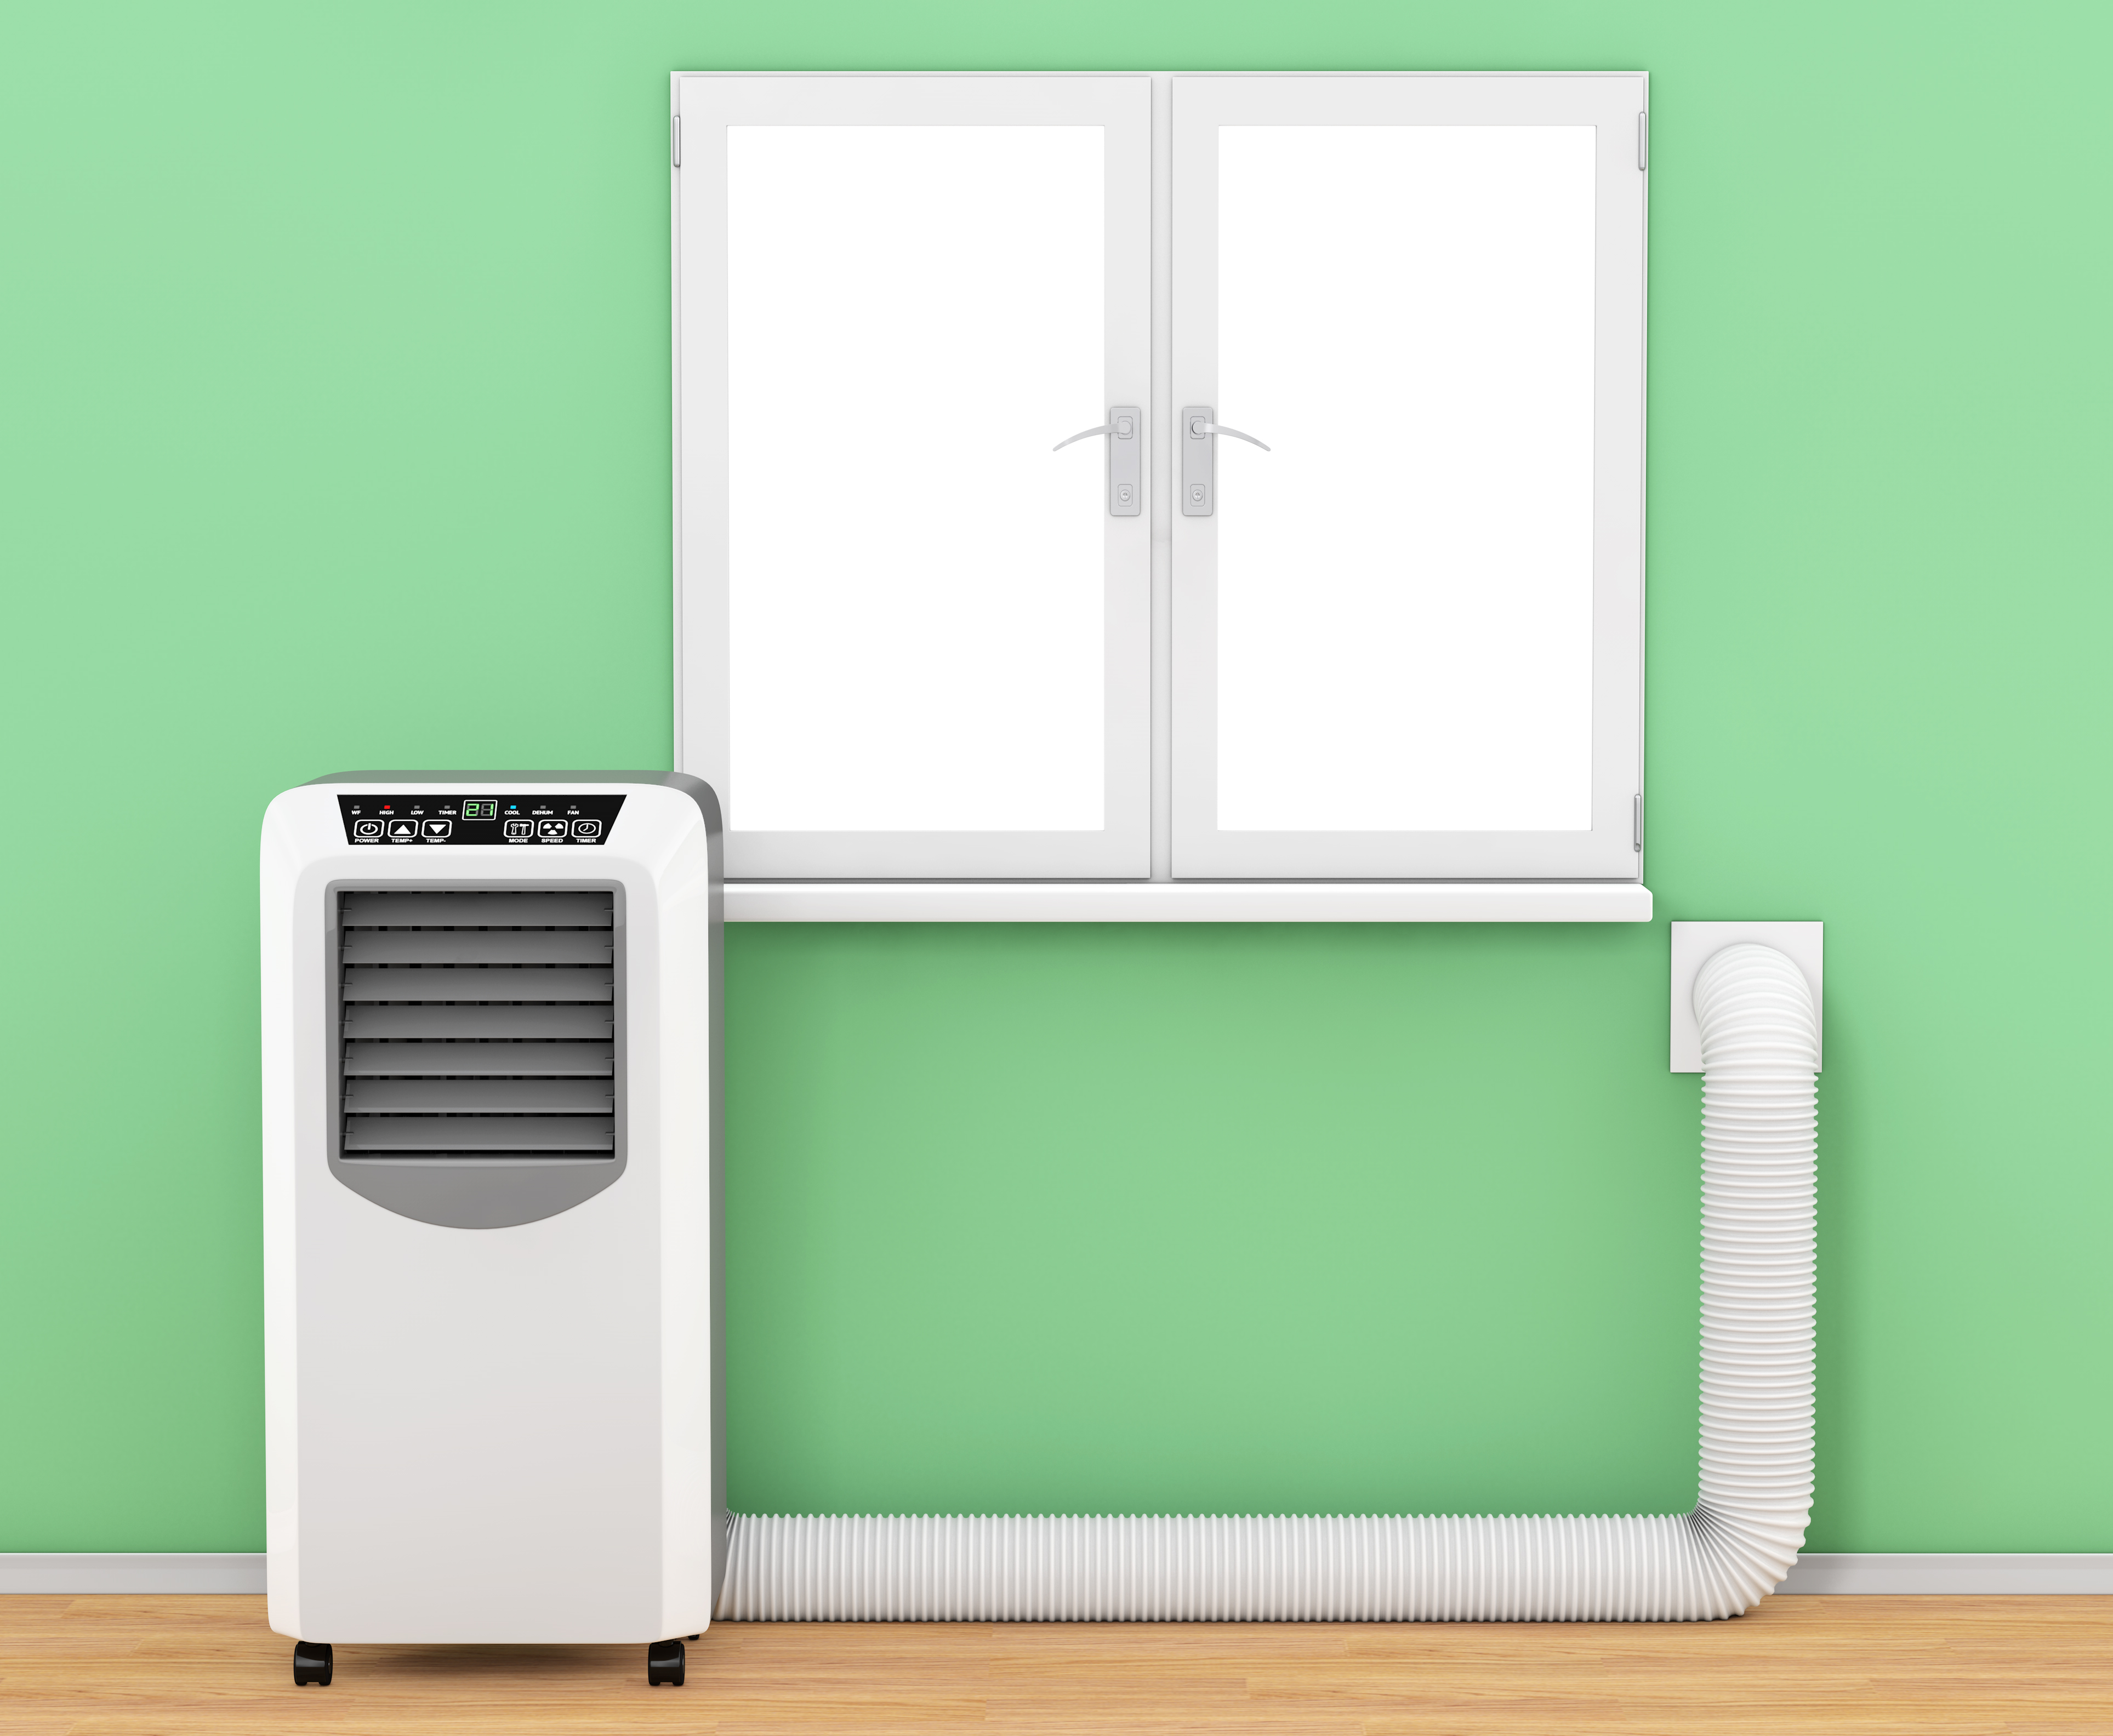 Portable air conditioning, venting through the wall.